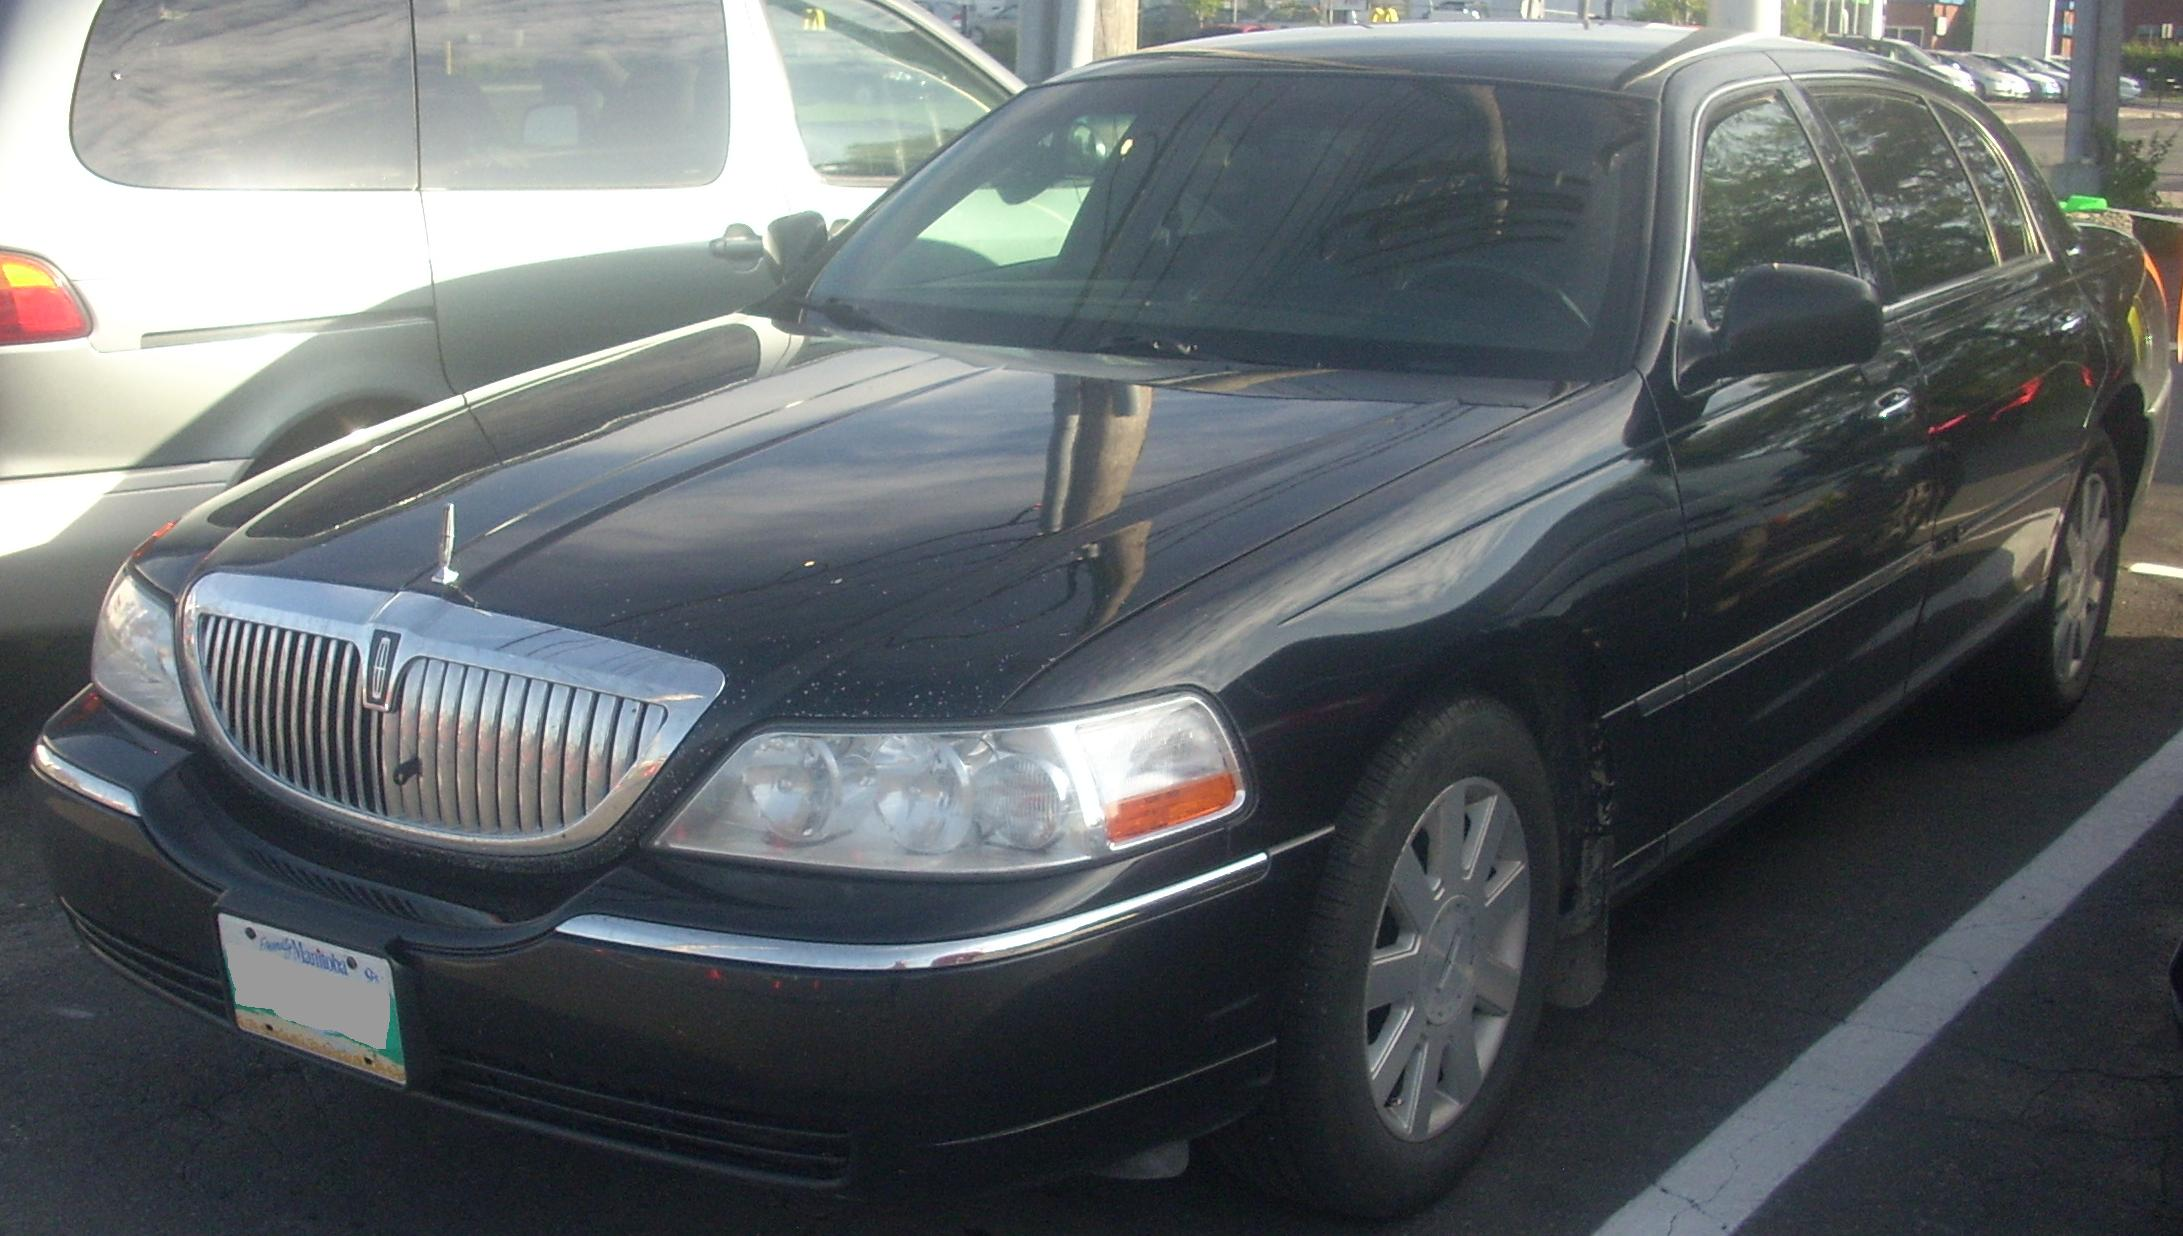 nyc uber rentals biracs lincoln car livery posts town